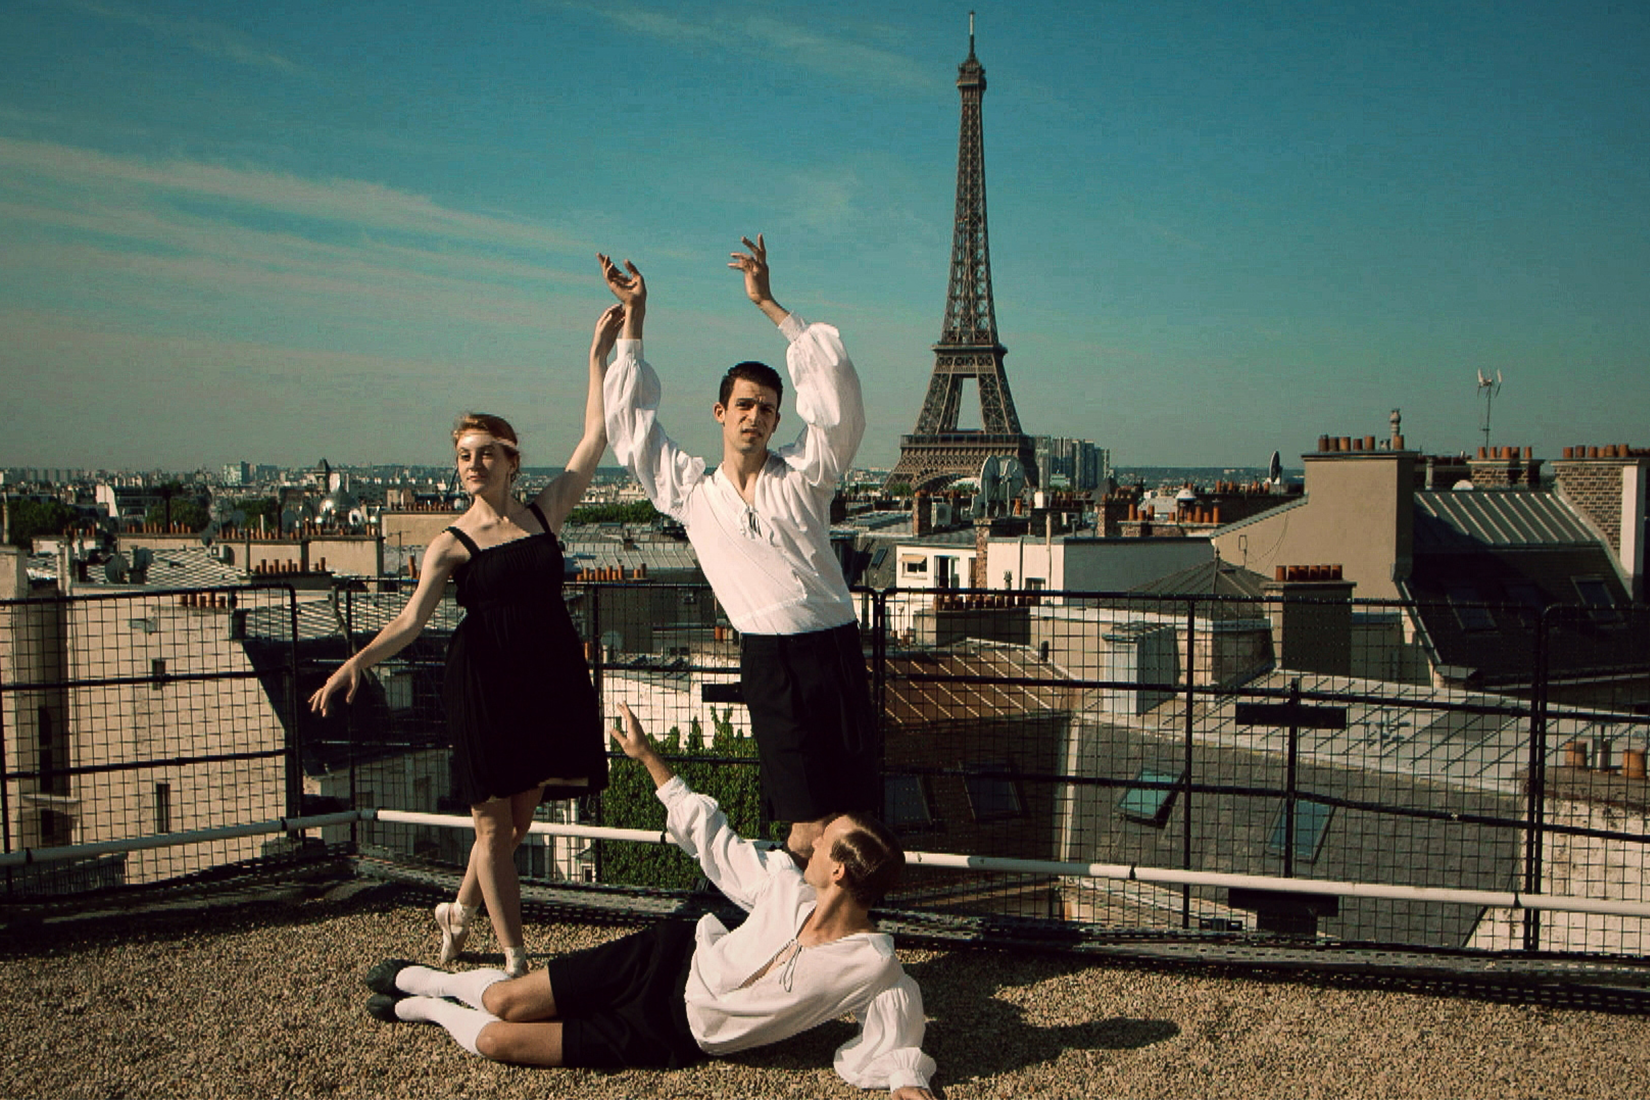 On the Parisian rooftops, dansers pose for the camera with the Eiffel Tower in the background.